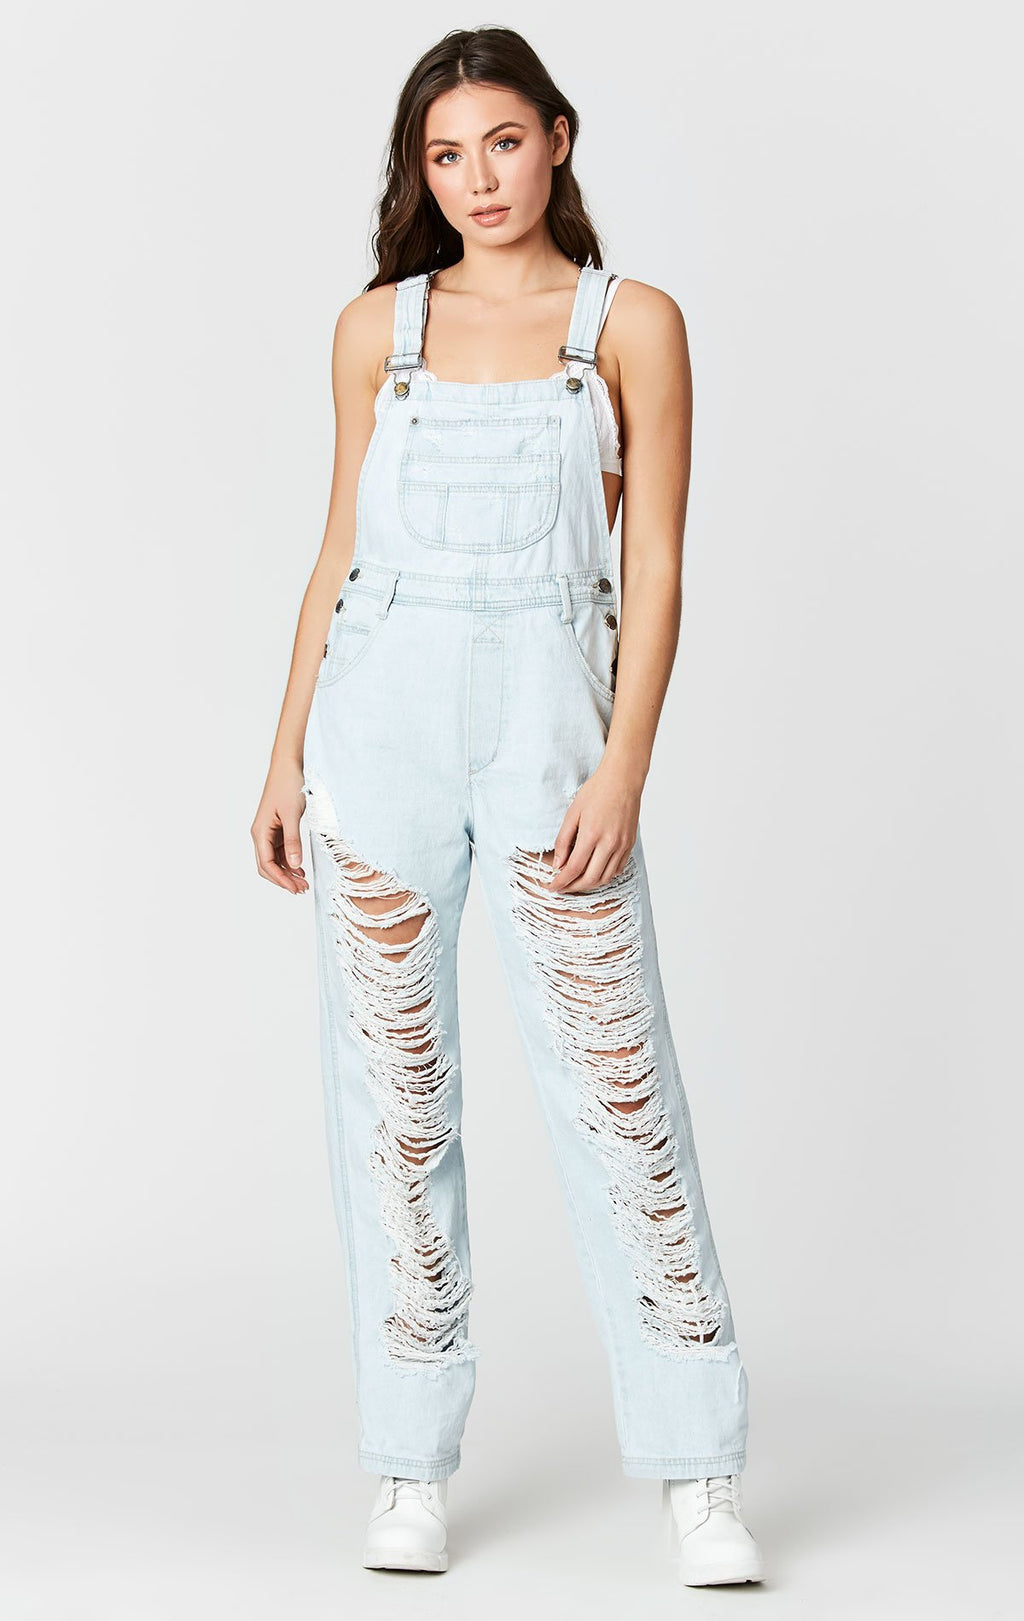 CARMAR DENIM JERICHO SUPER SHRED DENIM OVERALL FRONT